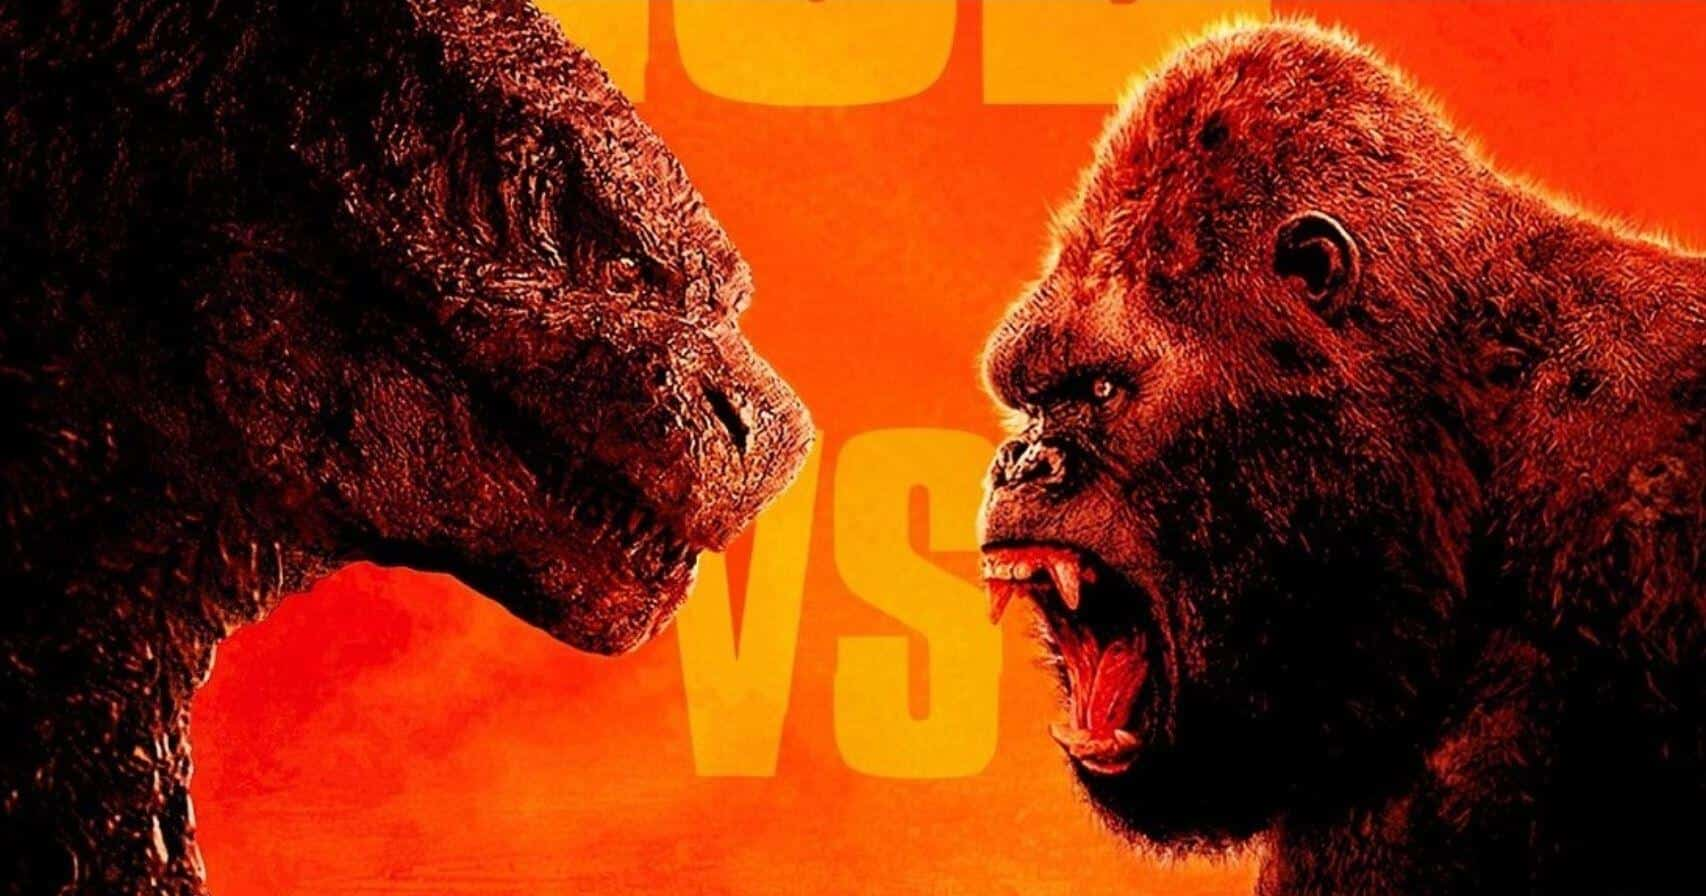 'Godzilla Vs. Kong' Gets New March 2020 Release Date